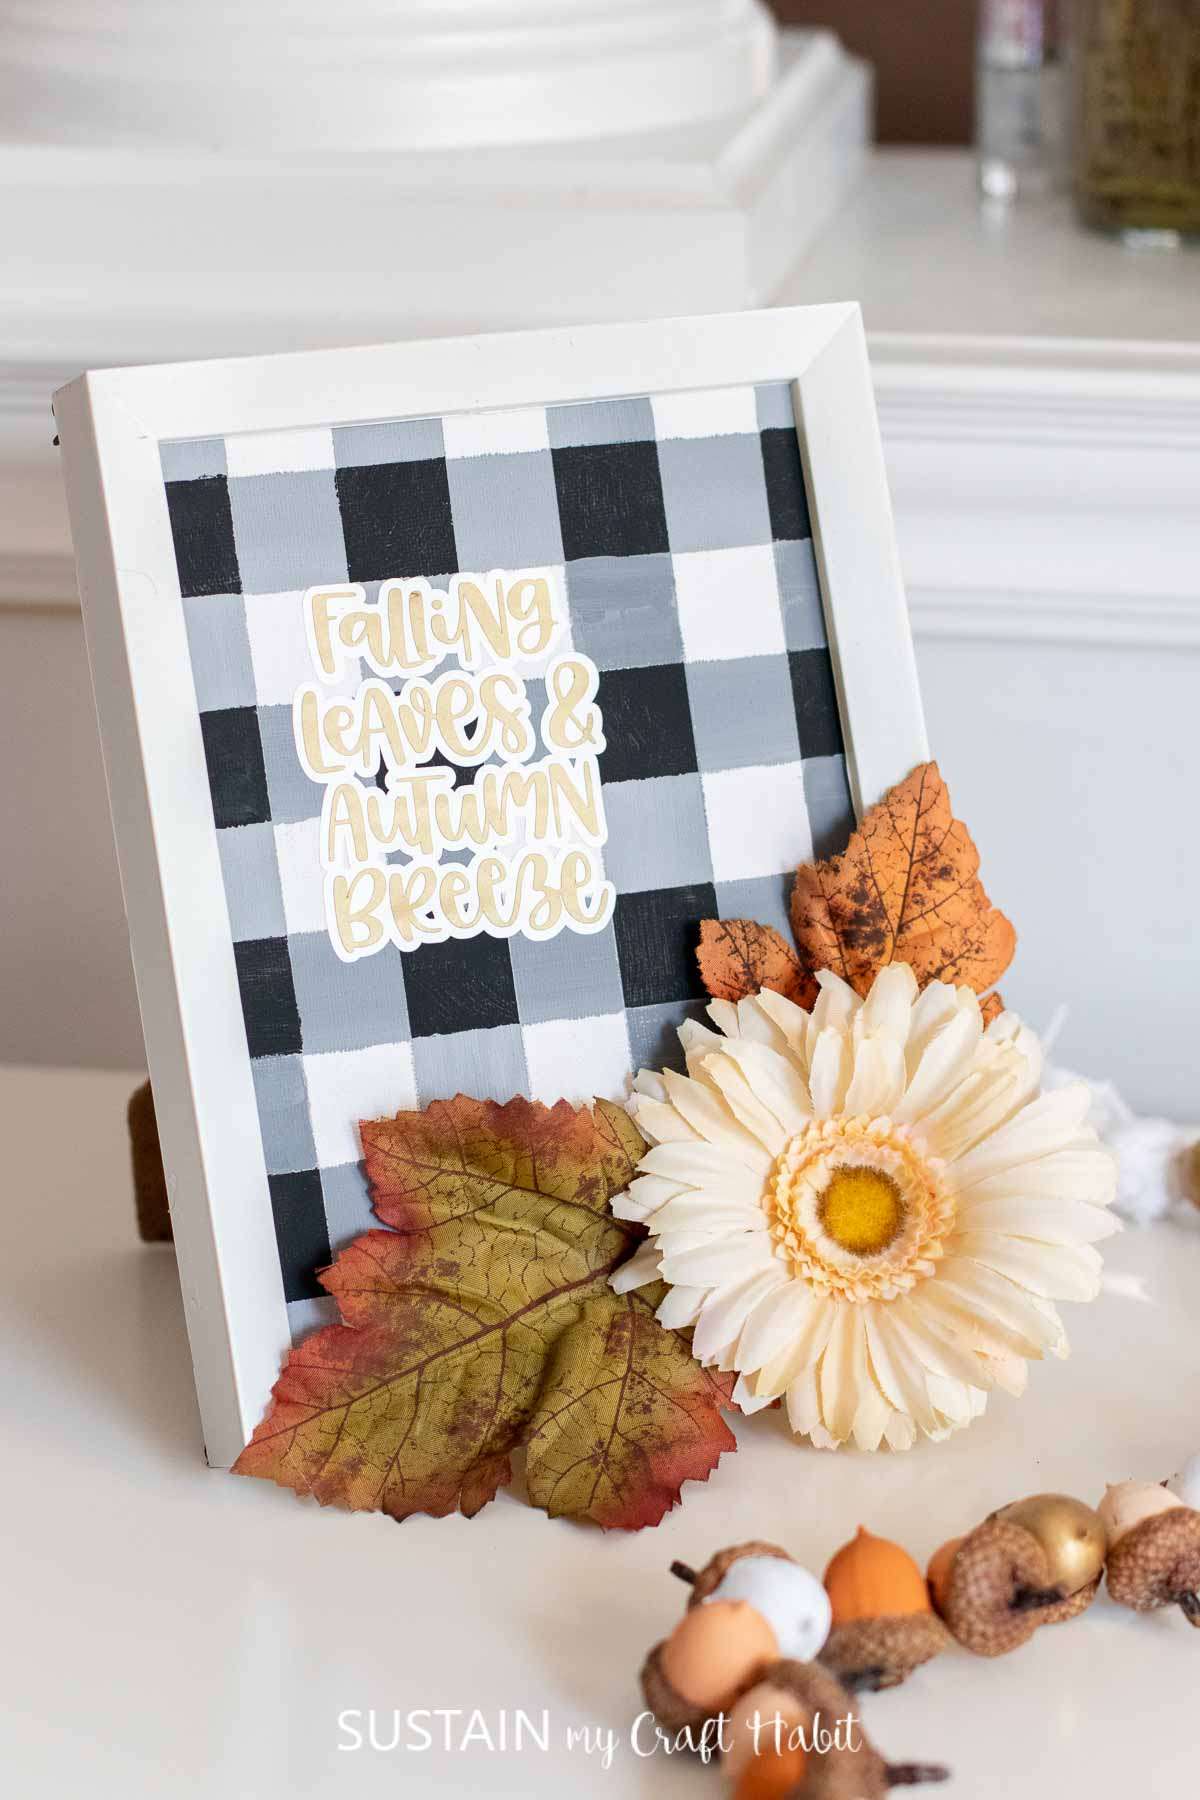 """Painted buffalo plaid pattern in a frame with a """"falling leaves and autumn breeze"""" cut out phrase and faux flowers and leaves."""